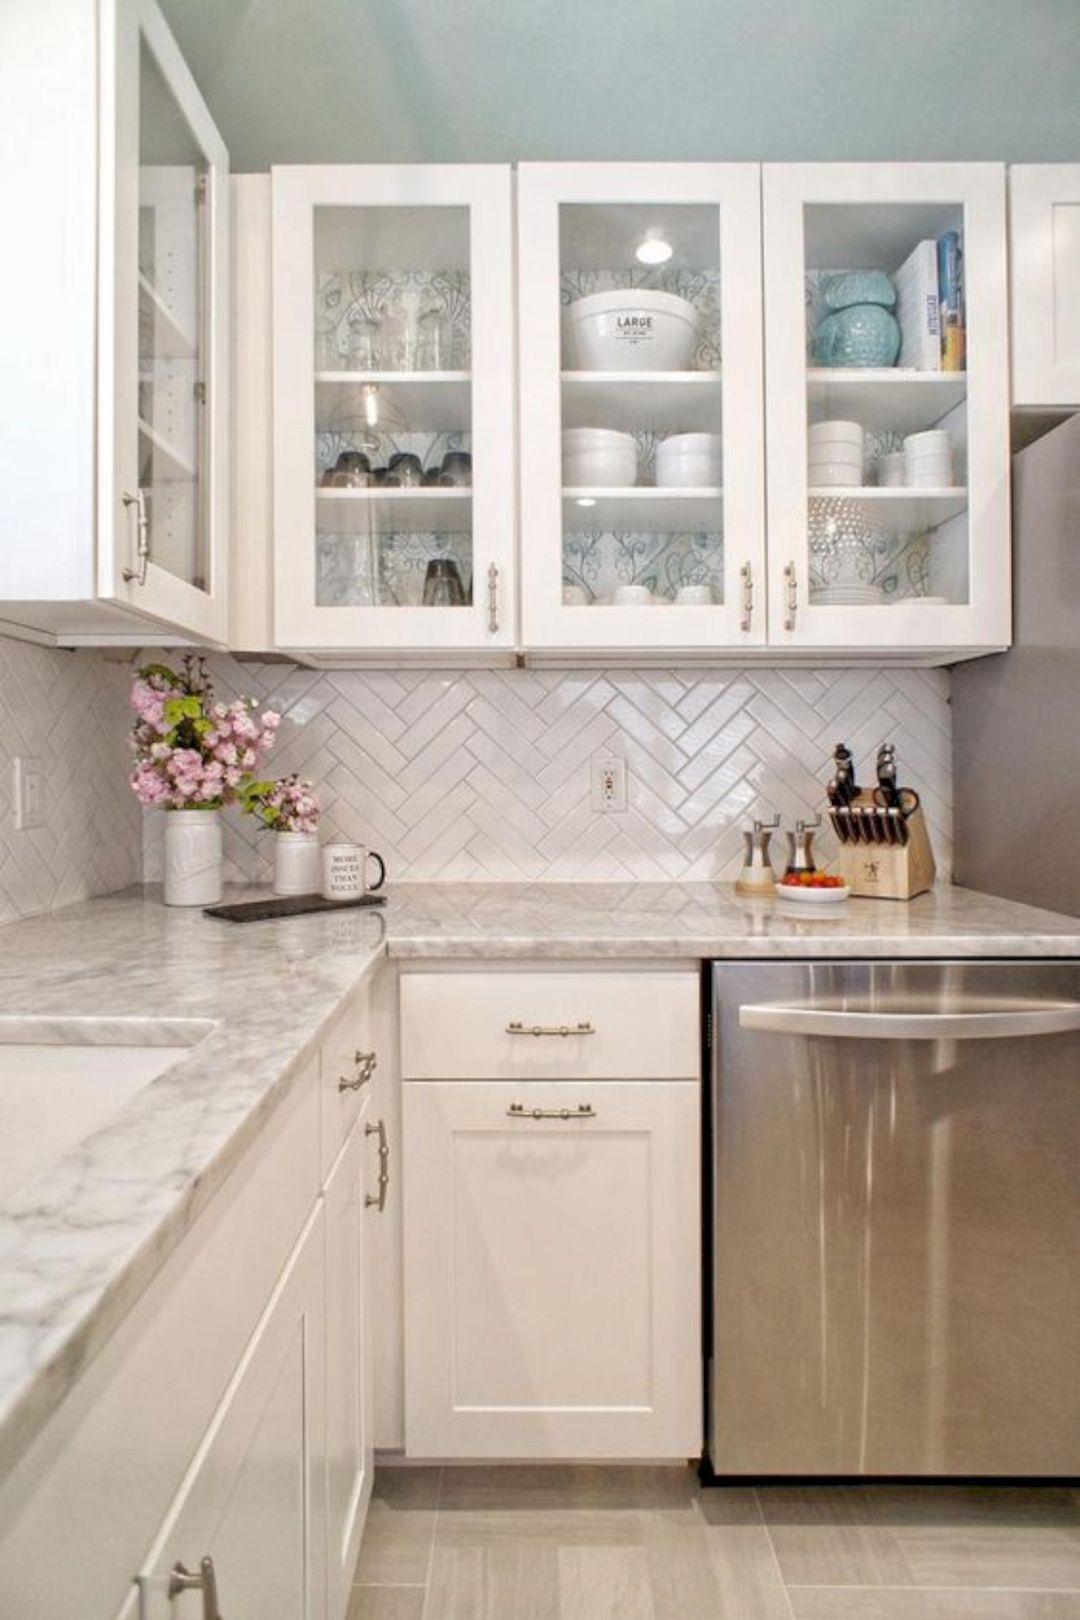 16 Top Kitchen Renovation Ideas https://www.futuristarchitecture.com Pinterest Kitchen Home Decor Ideas Html on mexican style home kitchen ideas, pinterest decorating mantels with baskets, mexican style home decor ideas, kitchen decorating ideas, pinterest wall decor ideas, pinterest home decorating ideas, pinterest bathroom decor ideas, pinterest french country decor, pinterest shabby chic decorating, pinterest corrugated tin ideas, pinterest kitchen remodel, pinterest winter porch ideas, kitchen paint ideas, long kitchen ideas, pinterest country decor kitchen, distressed wood kitchen ideas, pinterest home projects, gray kitchen ideas, pinterest patio ideas home, pinterest wall decor kitchen,